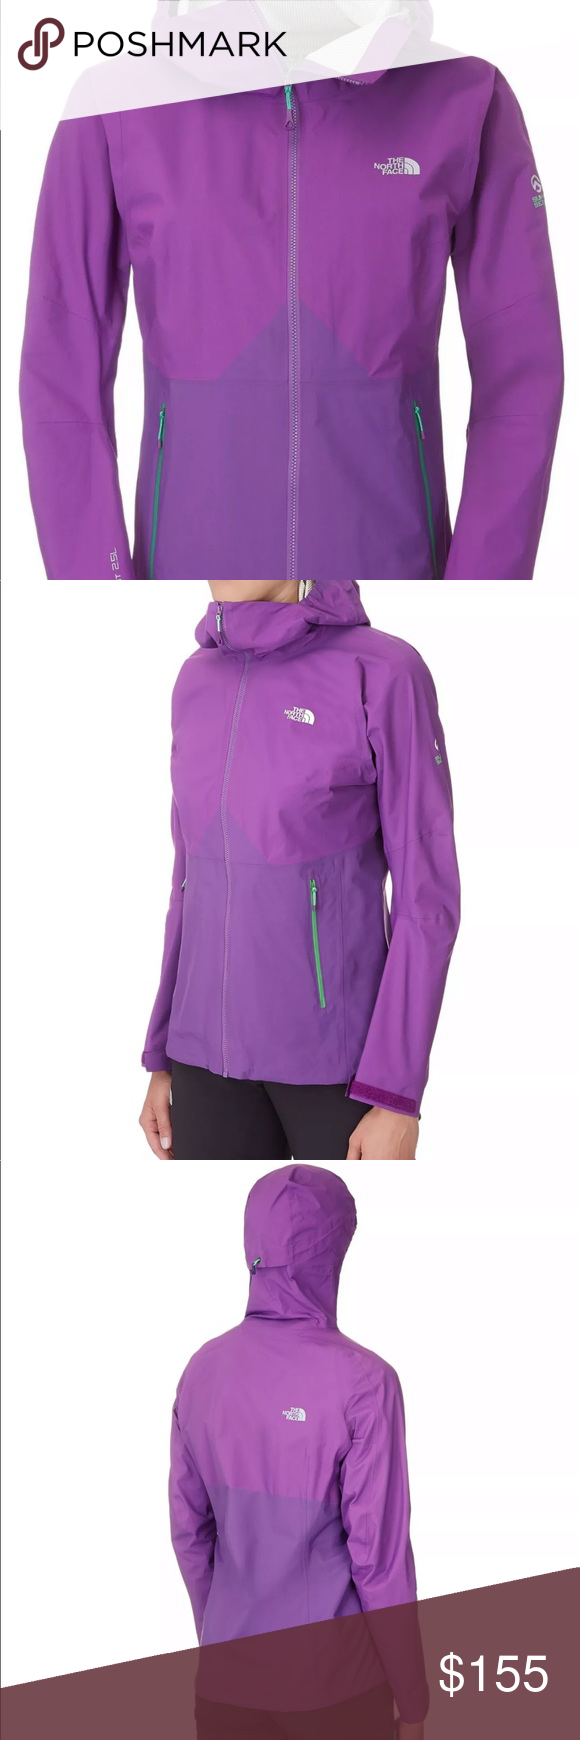 5e5a3df46 Women's The North Face Steep Fuseform Originator The North Face ...